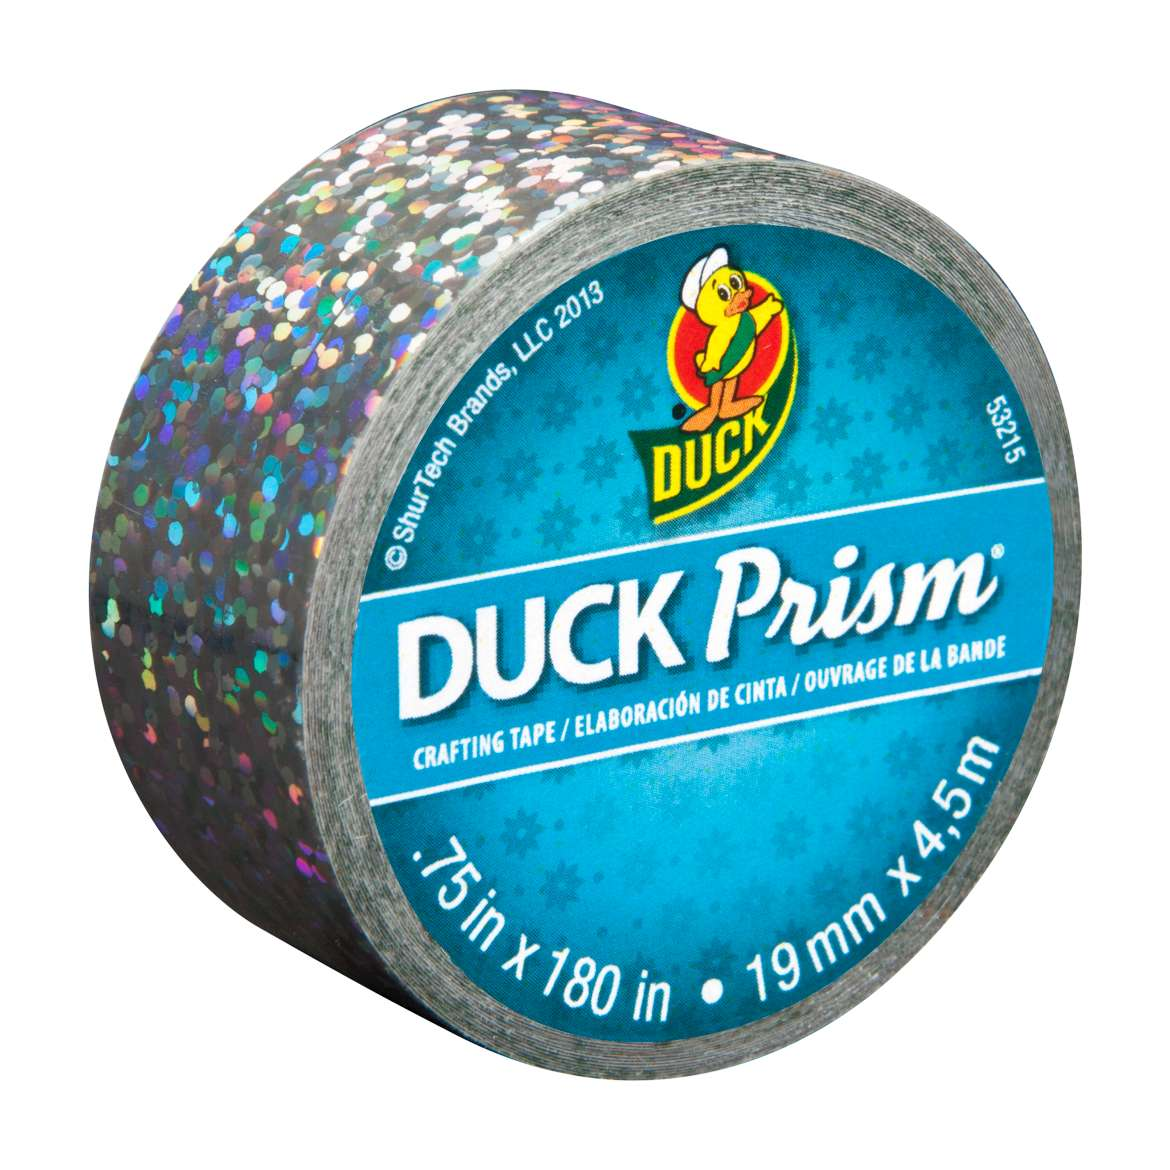 Duck Prism® Crafting Tape - Lots of Dots, .75 in. x 180 in. Image